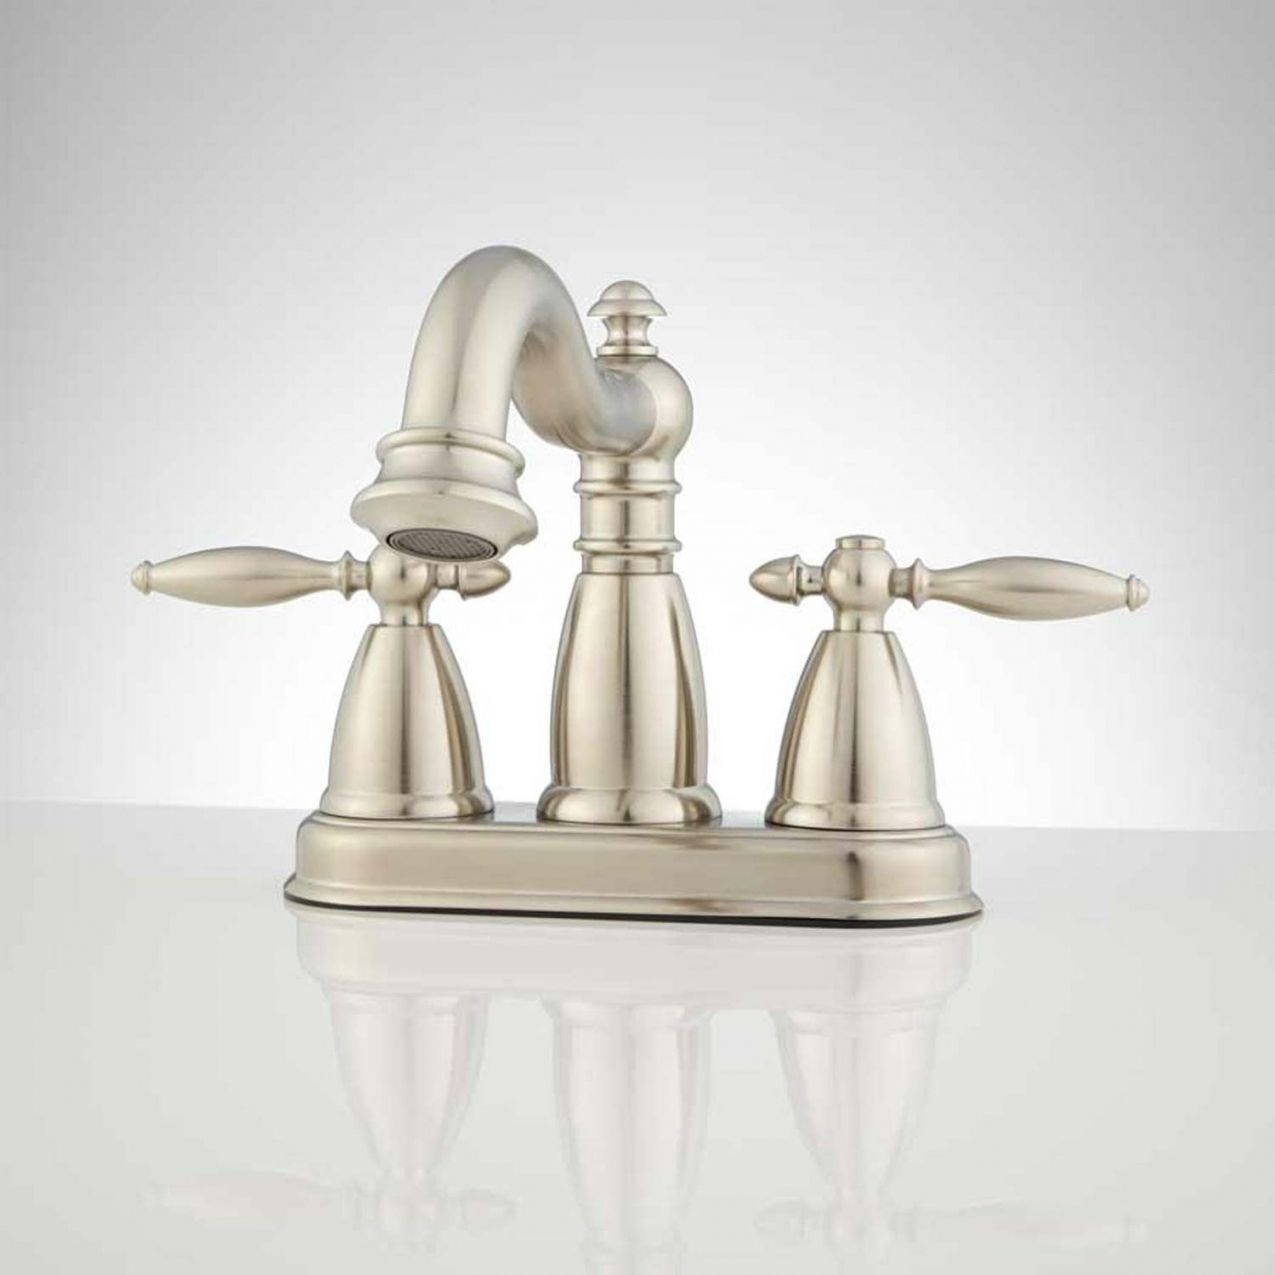 Matching Bathroom Faucet Sets Faucets And Flooring In